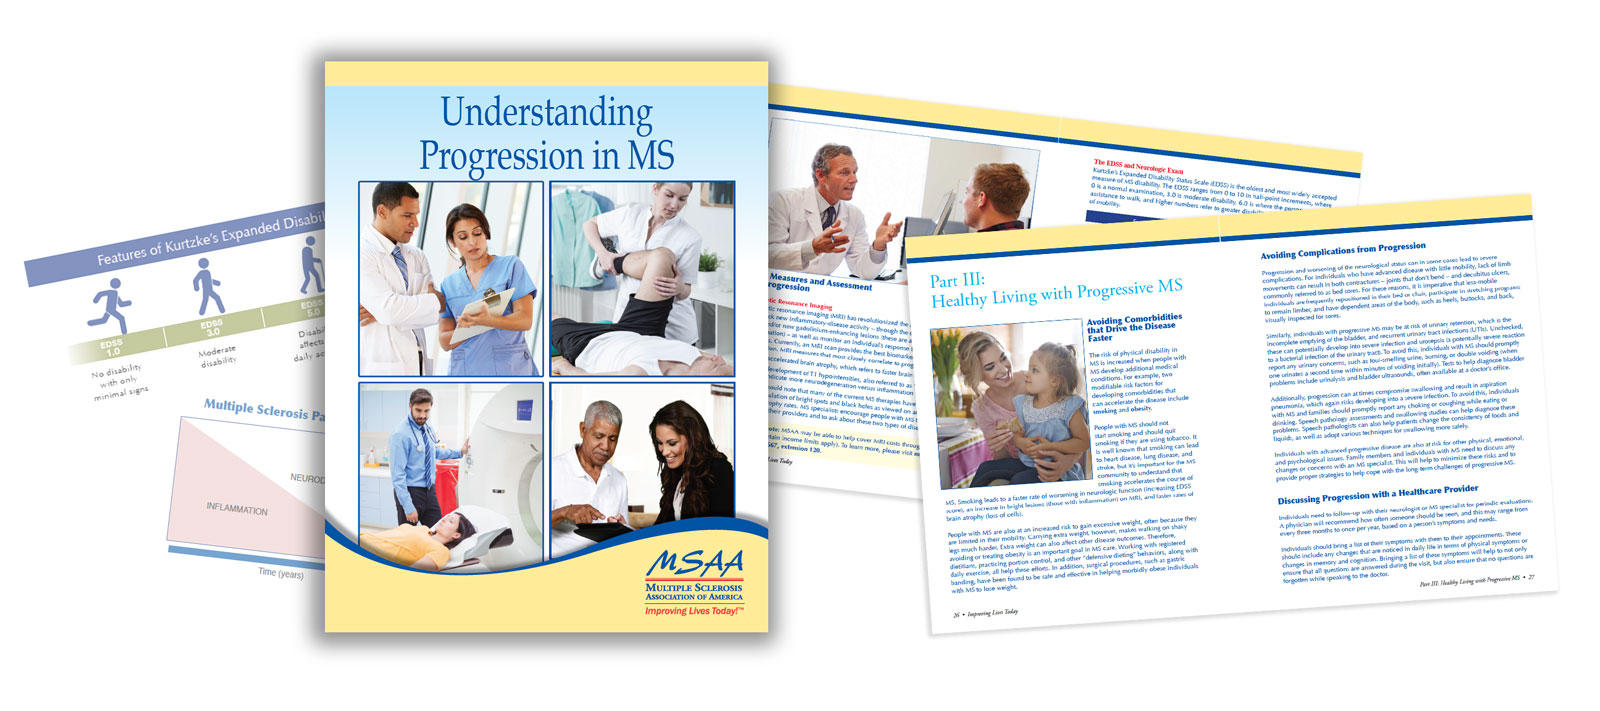 Understanding Progression in MS - a publication from MSAA